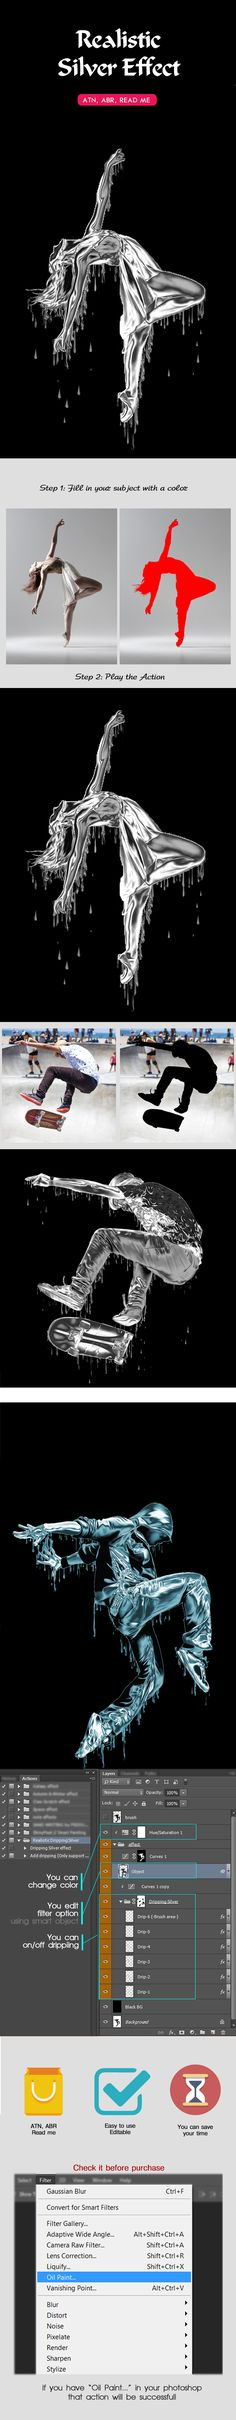 Realistic Dripping Silver Photoshop Action - Photo Effects Actions